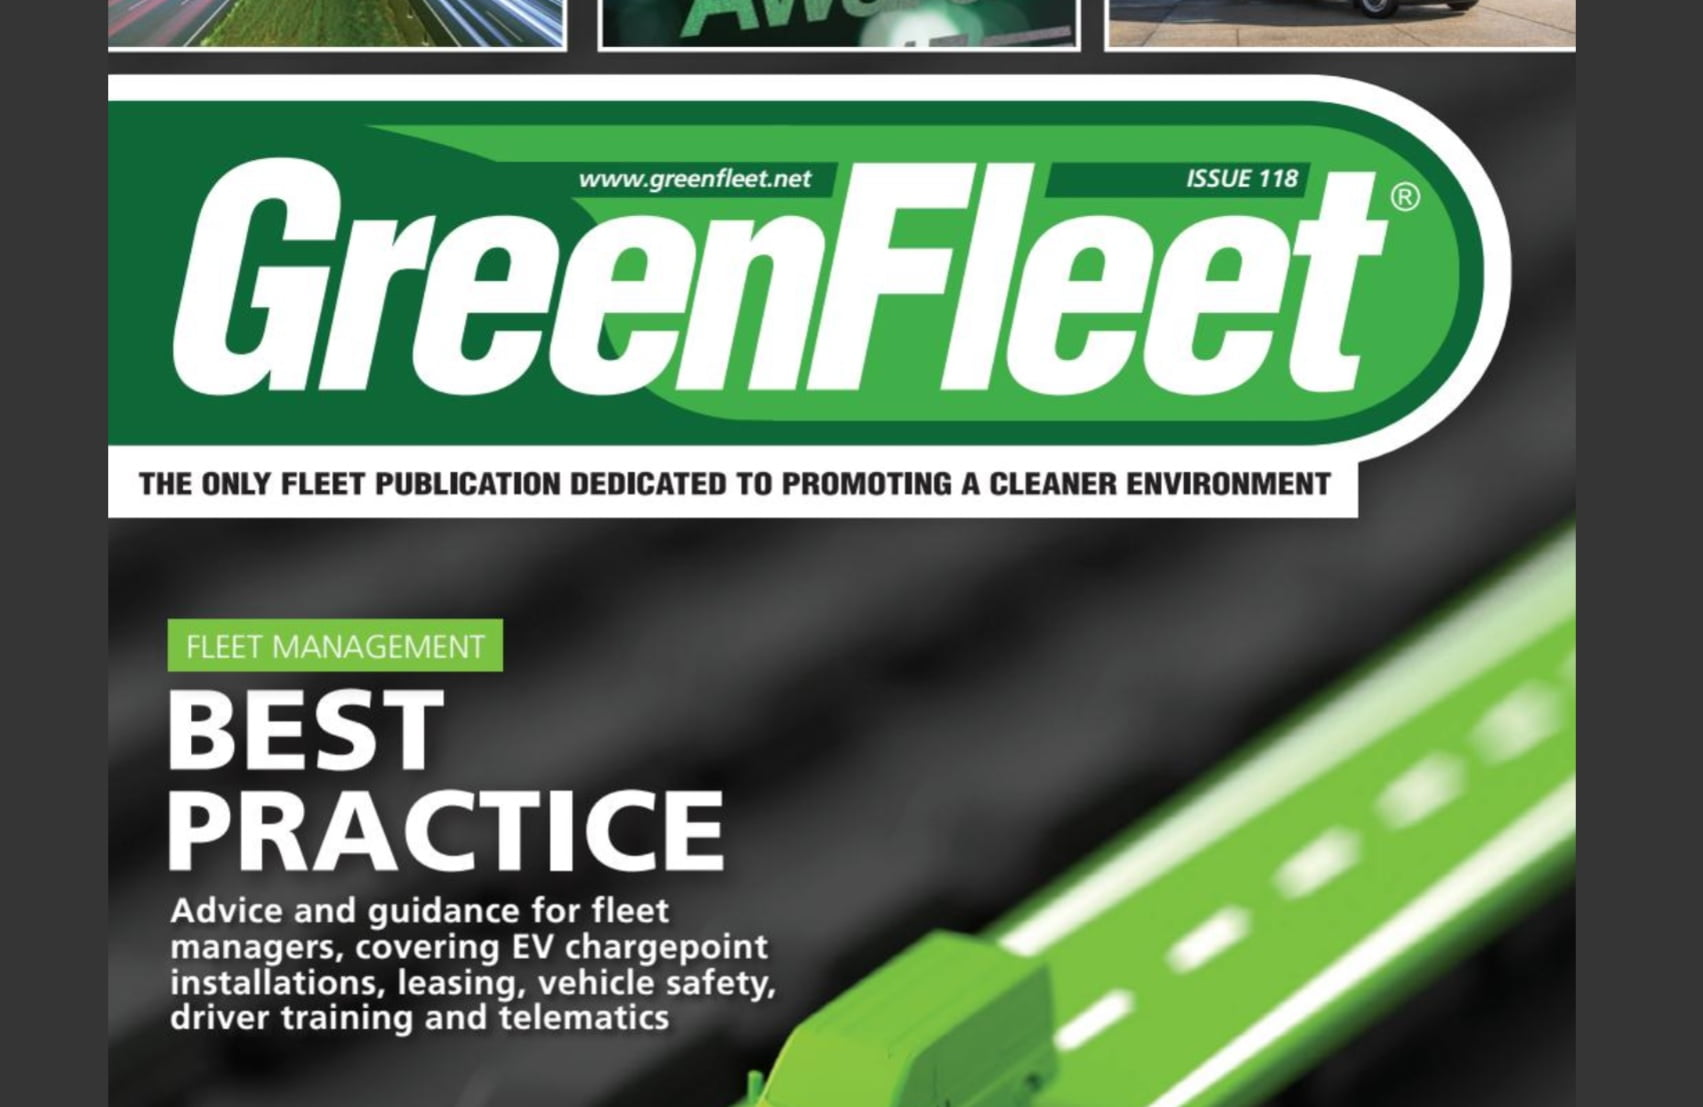 EV adoption: GreenFleet's best practice guide